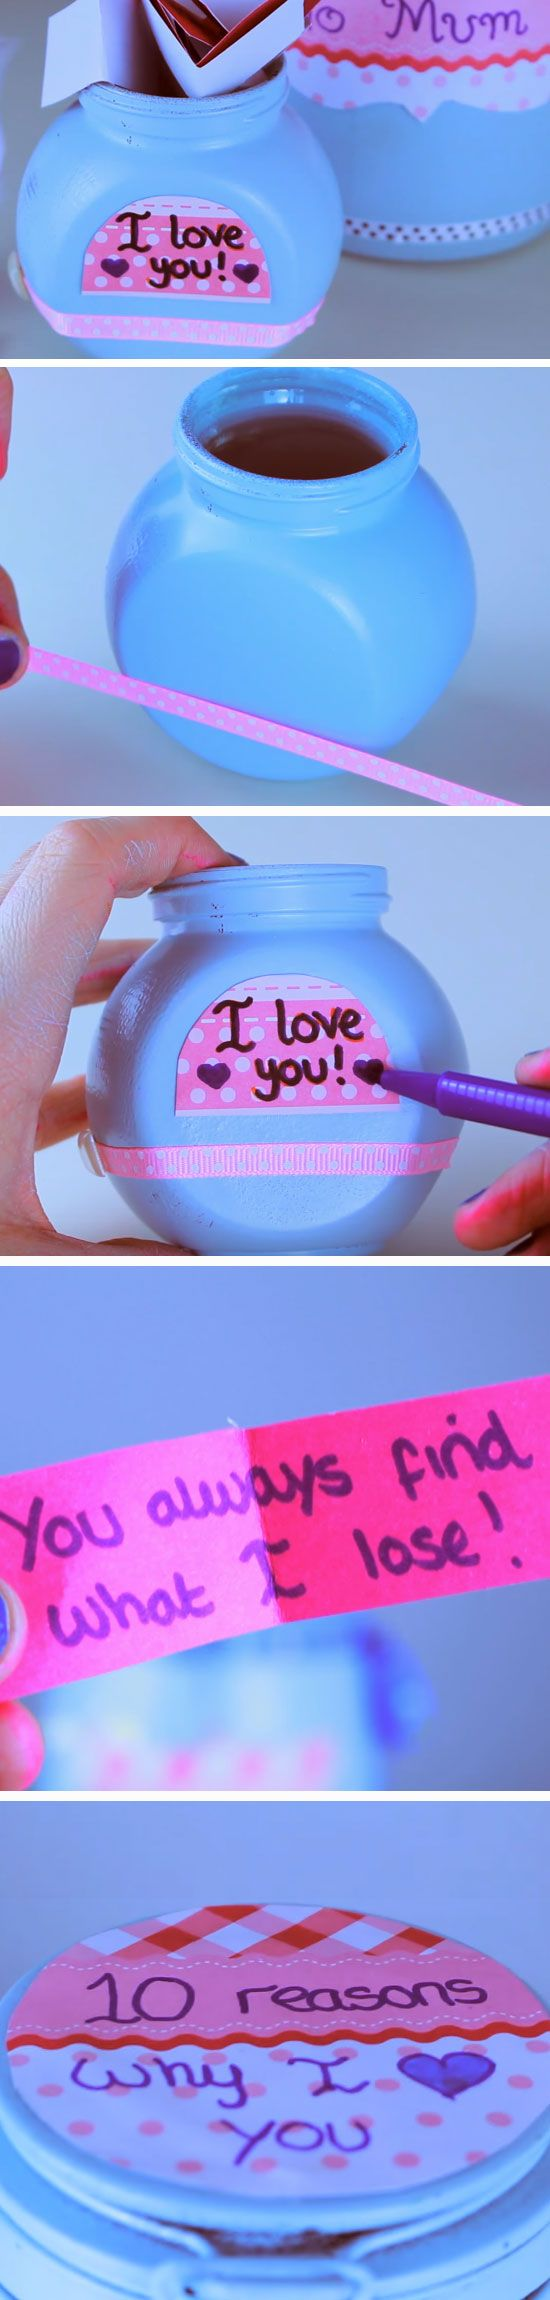 24 Diy Mothers Day Gift Ideas From Daughter Mothers Day Diy